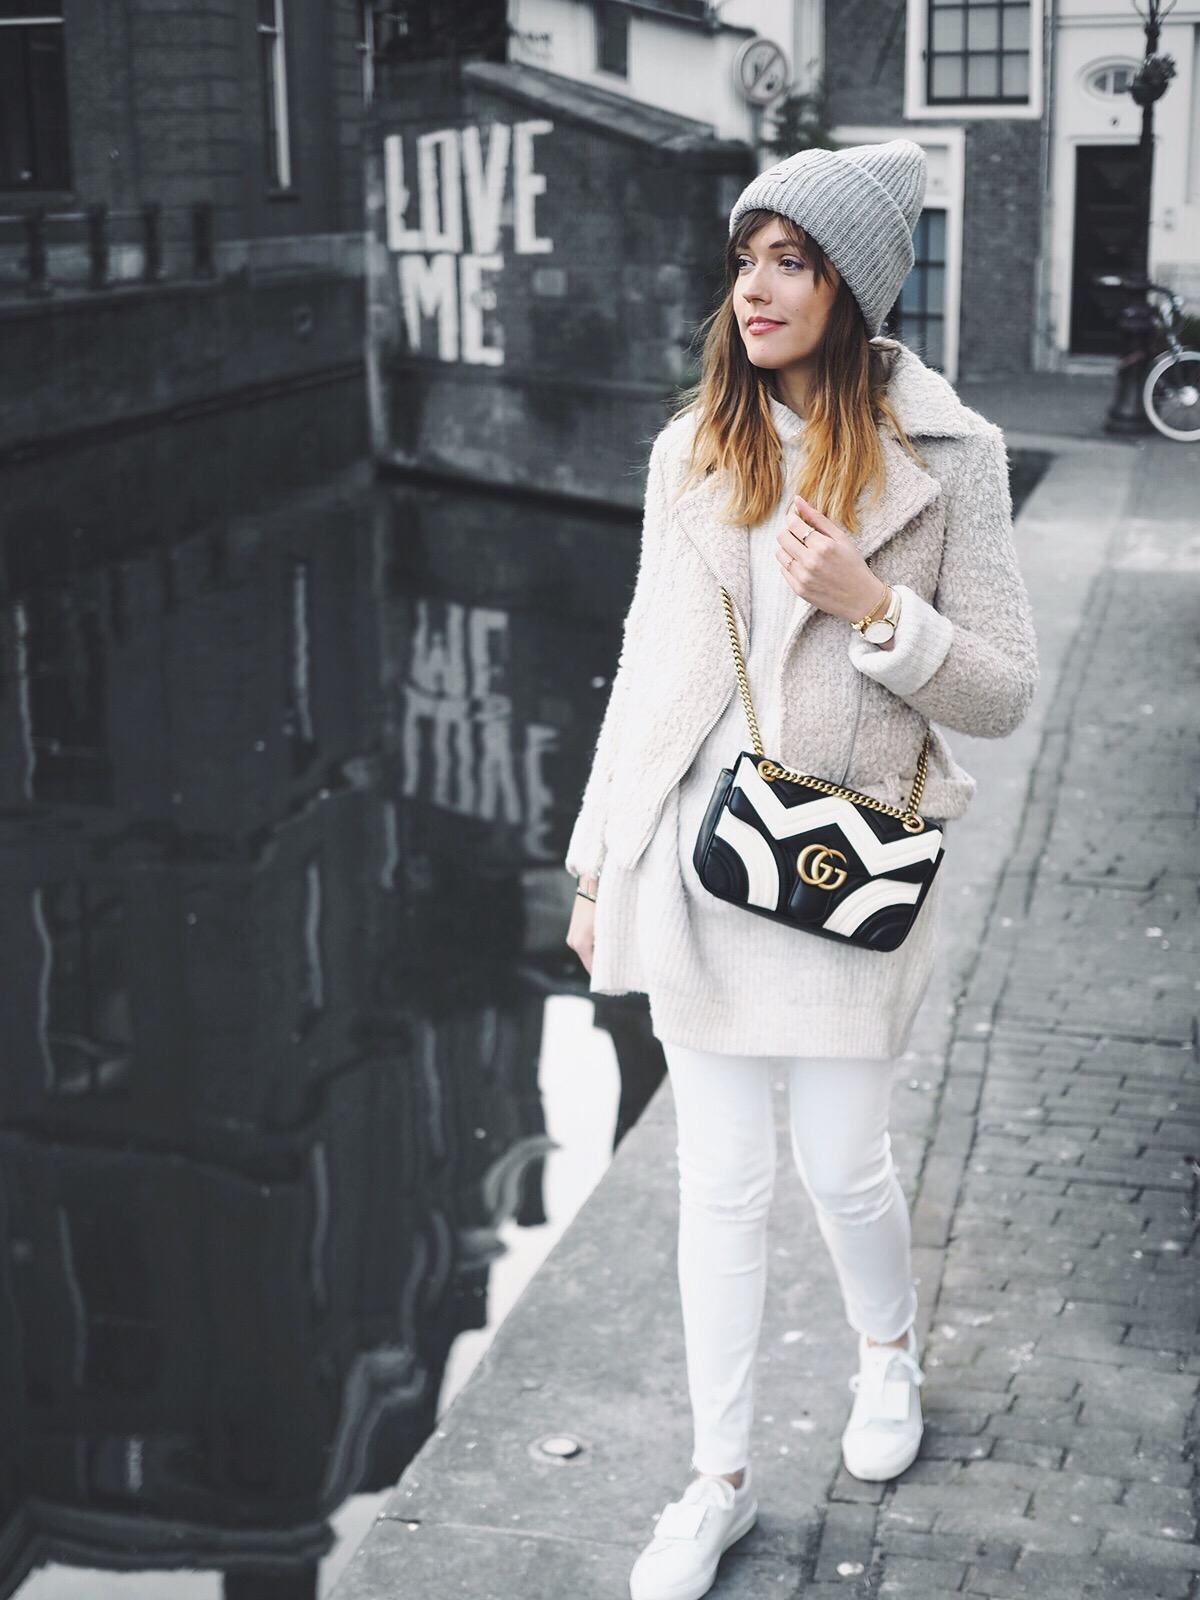 White & gold: the perfect winter combination